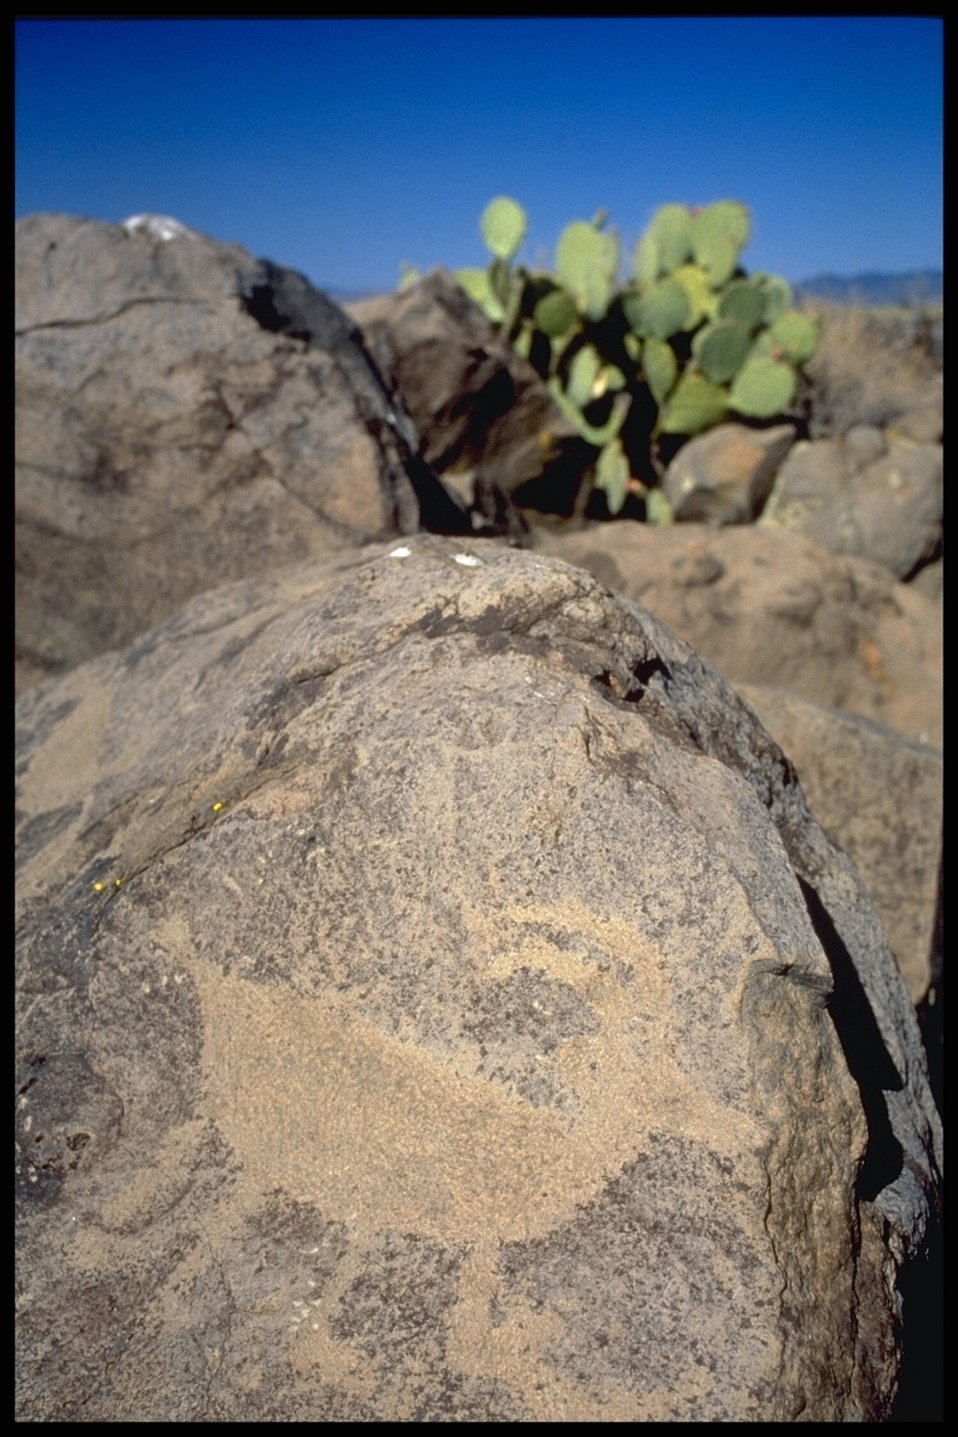 A Petroglyph (rock art) in the Agua Fria National Monument and a Prickly Pear Cactus in the background.